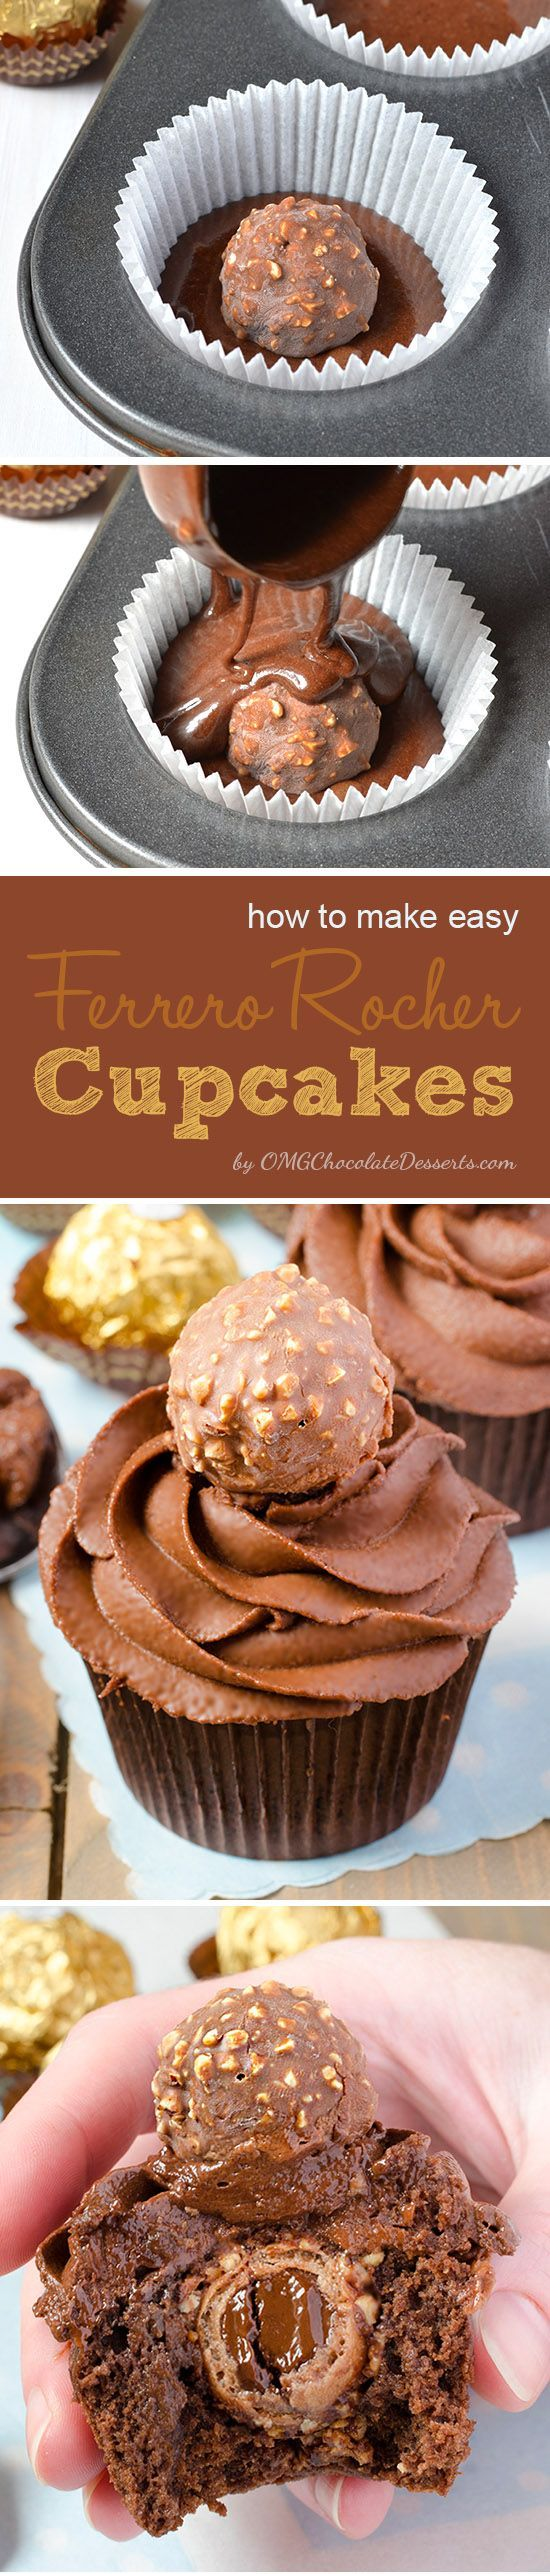 Ferrero Rocher Cupcakes | OMGChocolateDesserts.com | #cupcakes #chocolate #chocolates #sweet #yummy #delicious #food #chocolaterecipes #choco